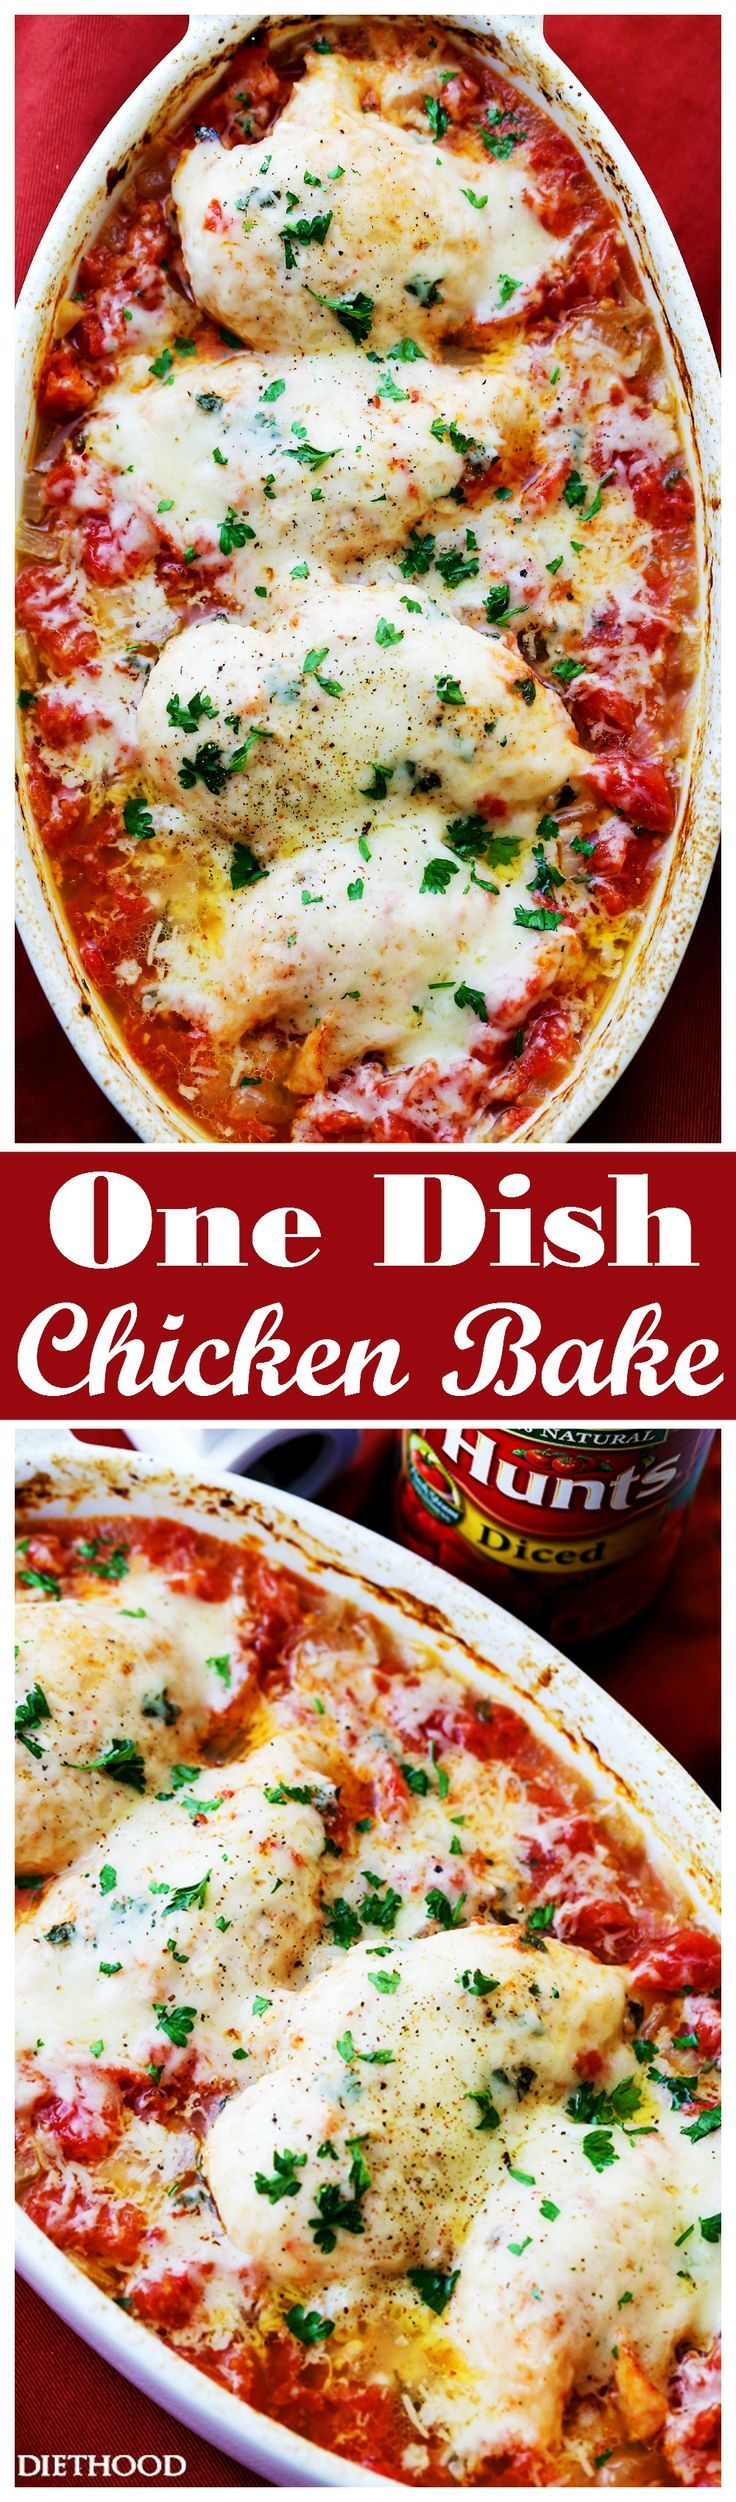 One Dish Chicken Bake Flavorful Chicken Baked On A Bed Of Tomatoes And Covered In